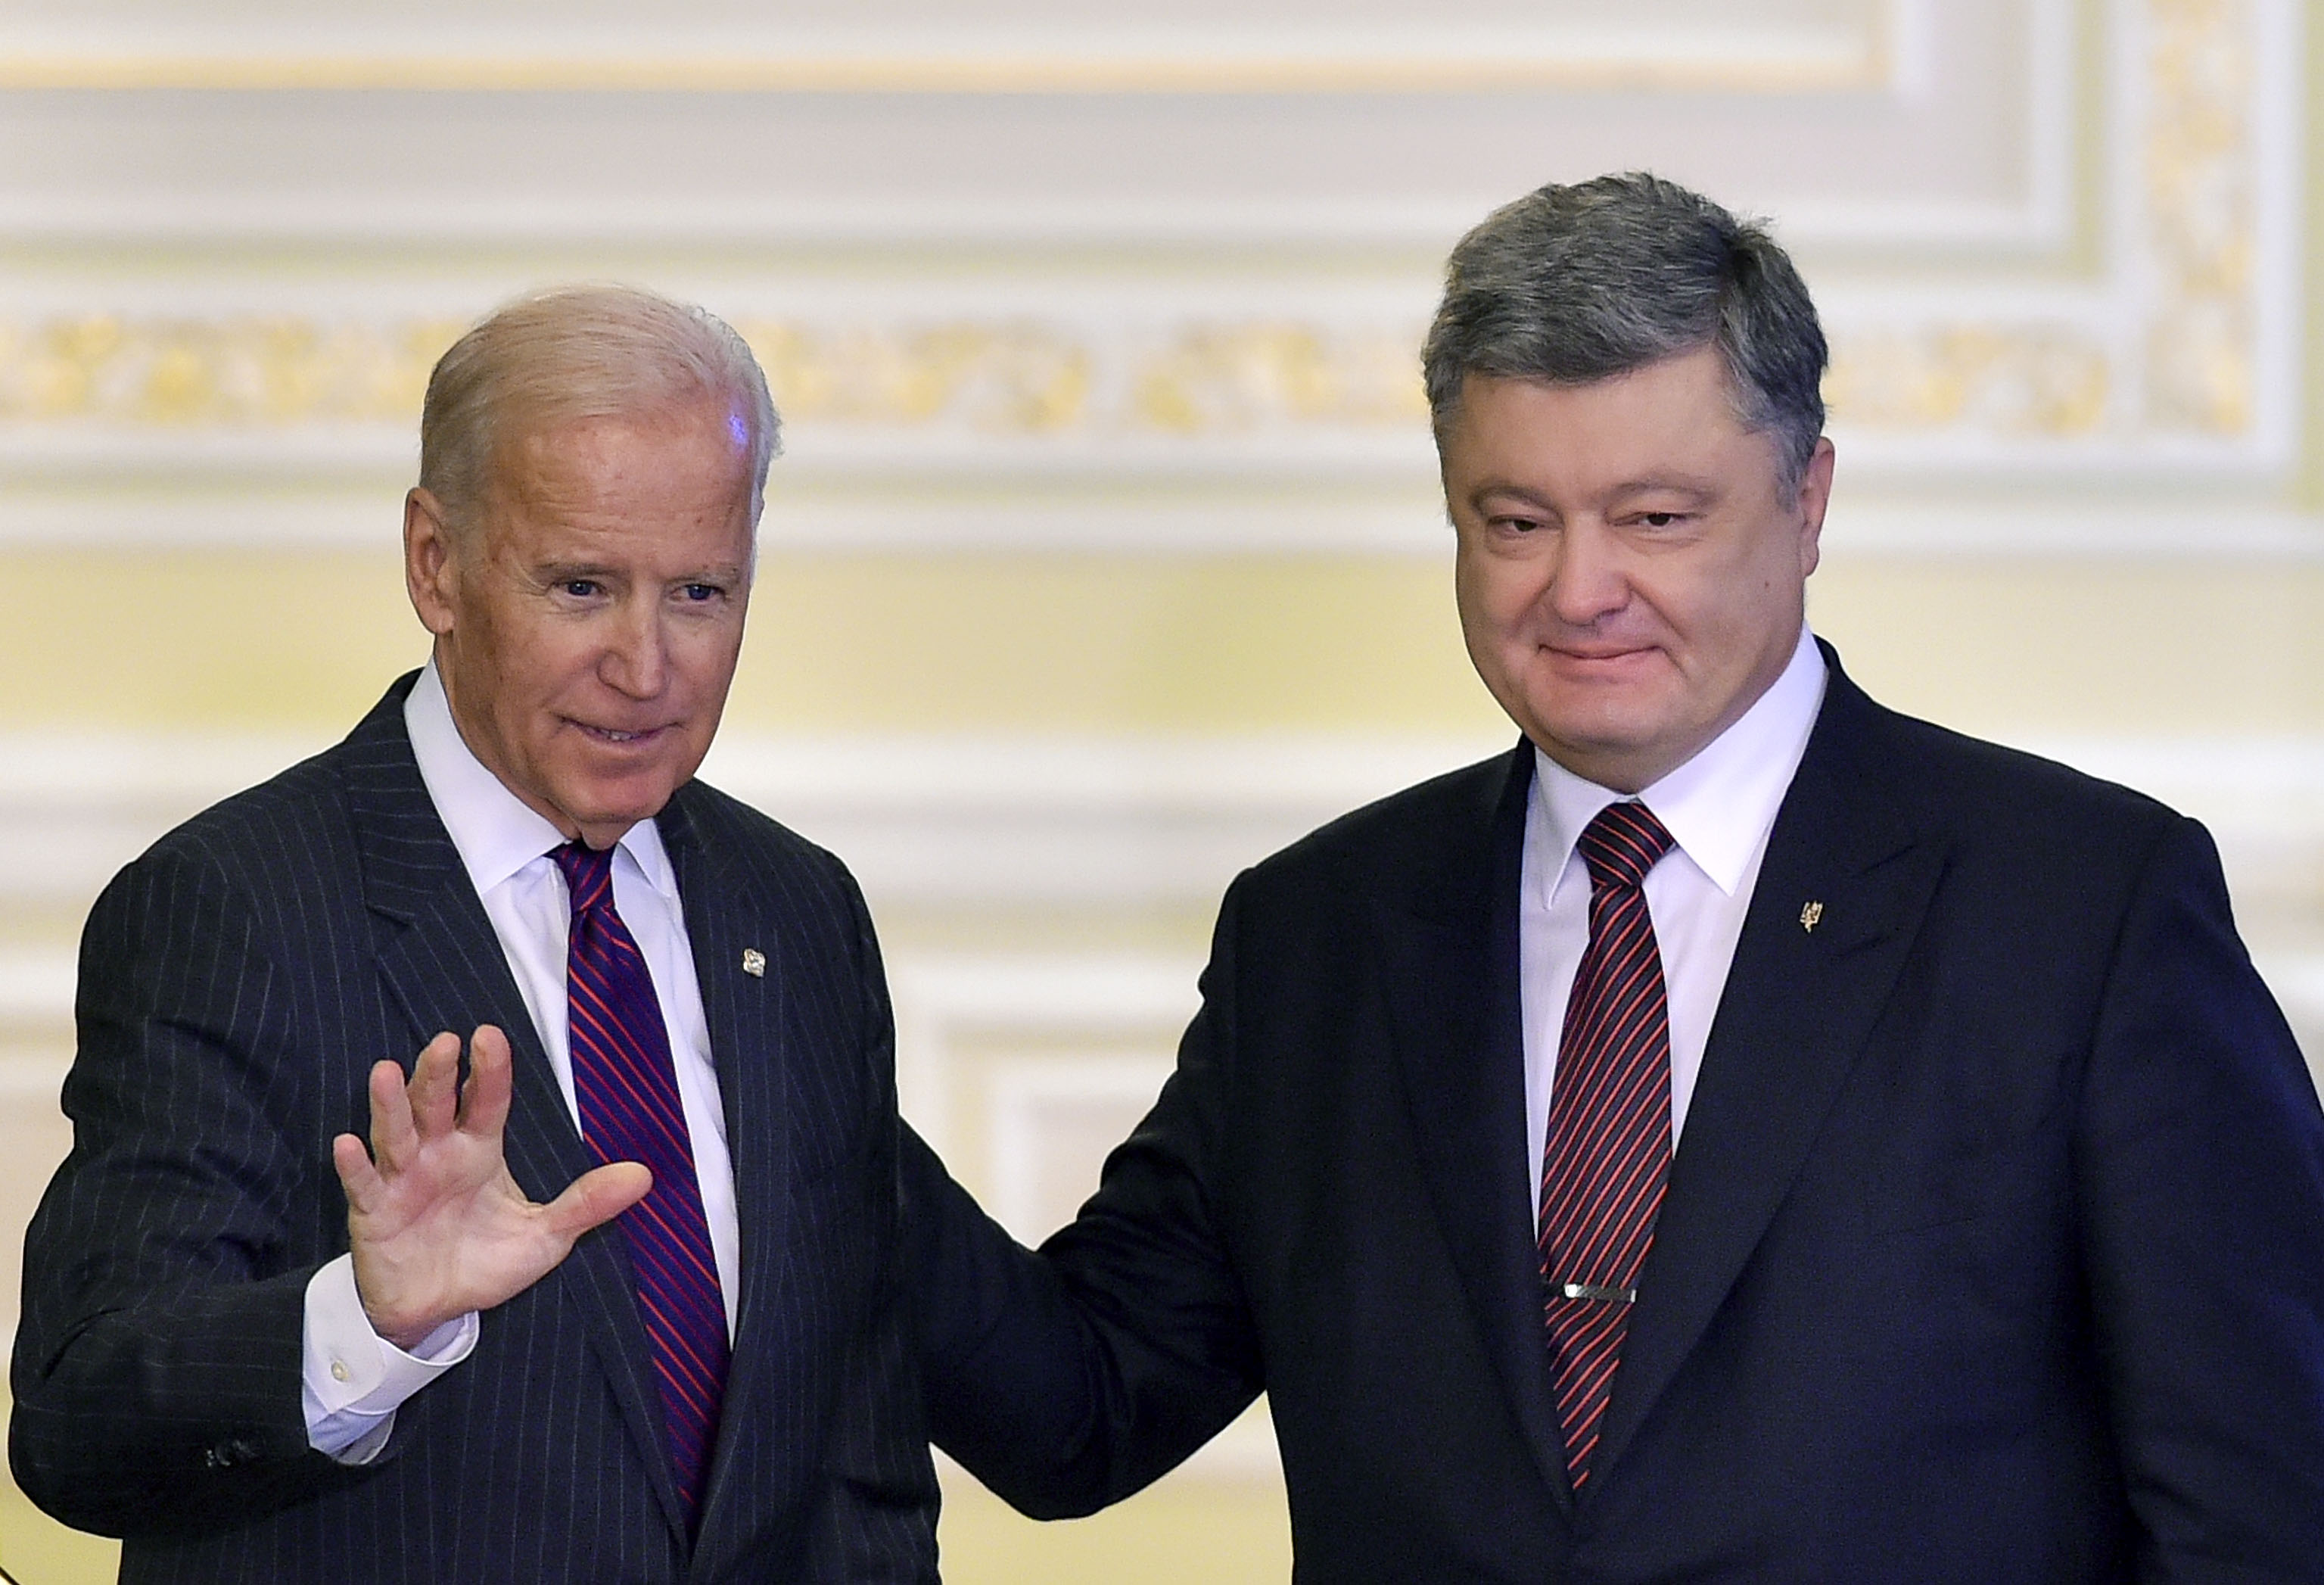 Biden: Minsk Accords are the only hope in moving forward as a united country